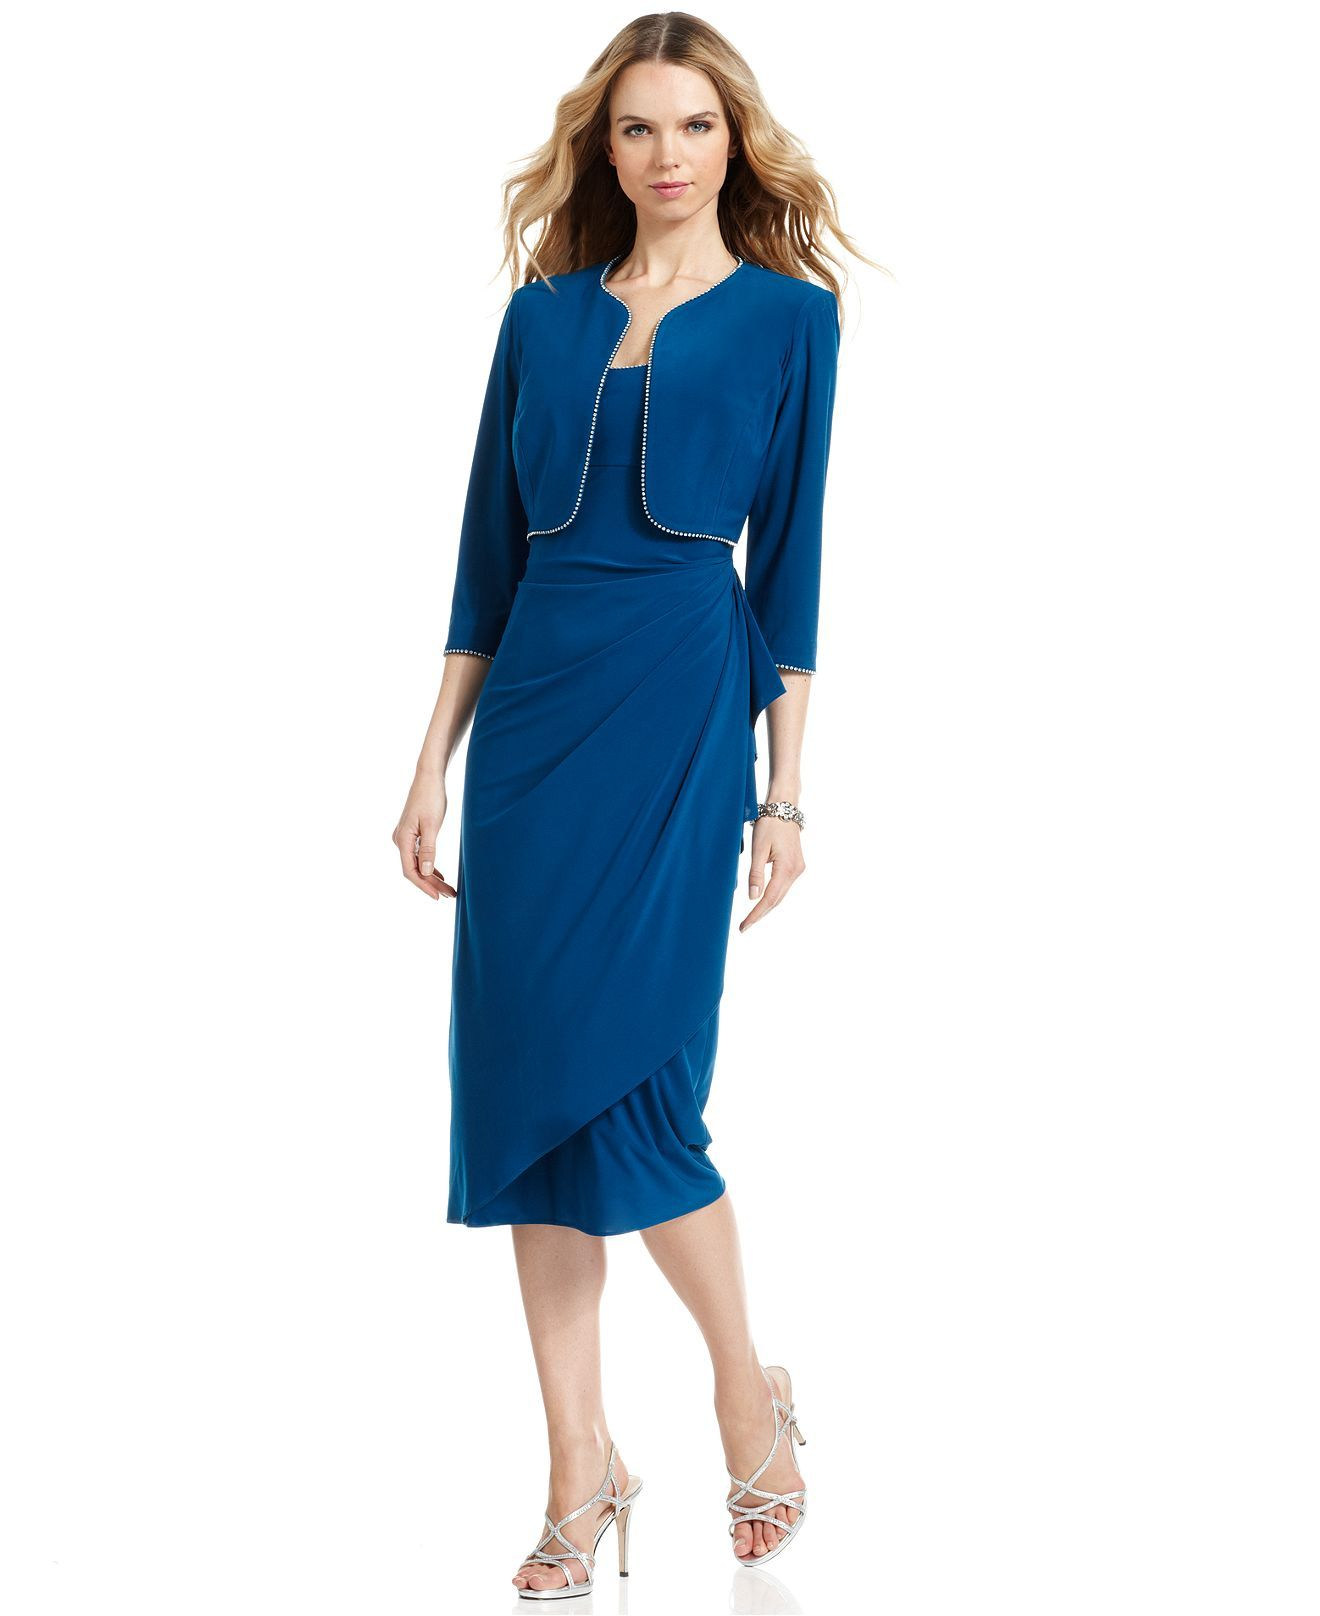 Macy's Tea Length Dresses